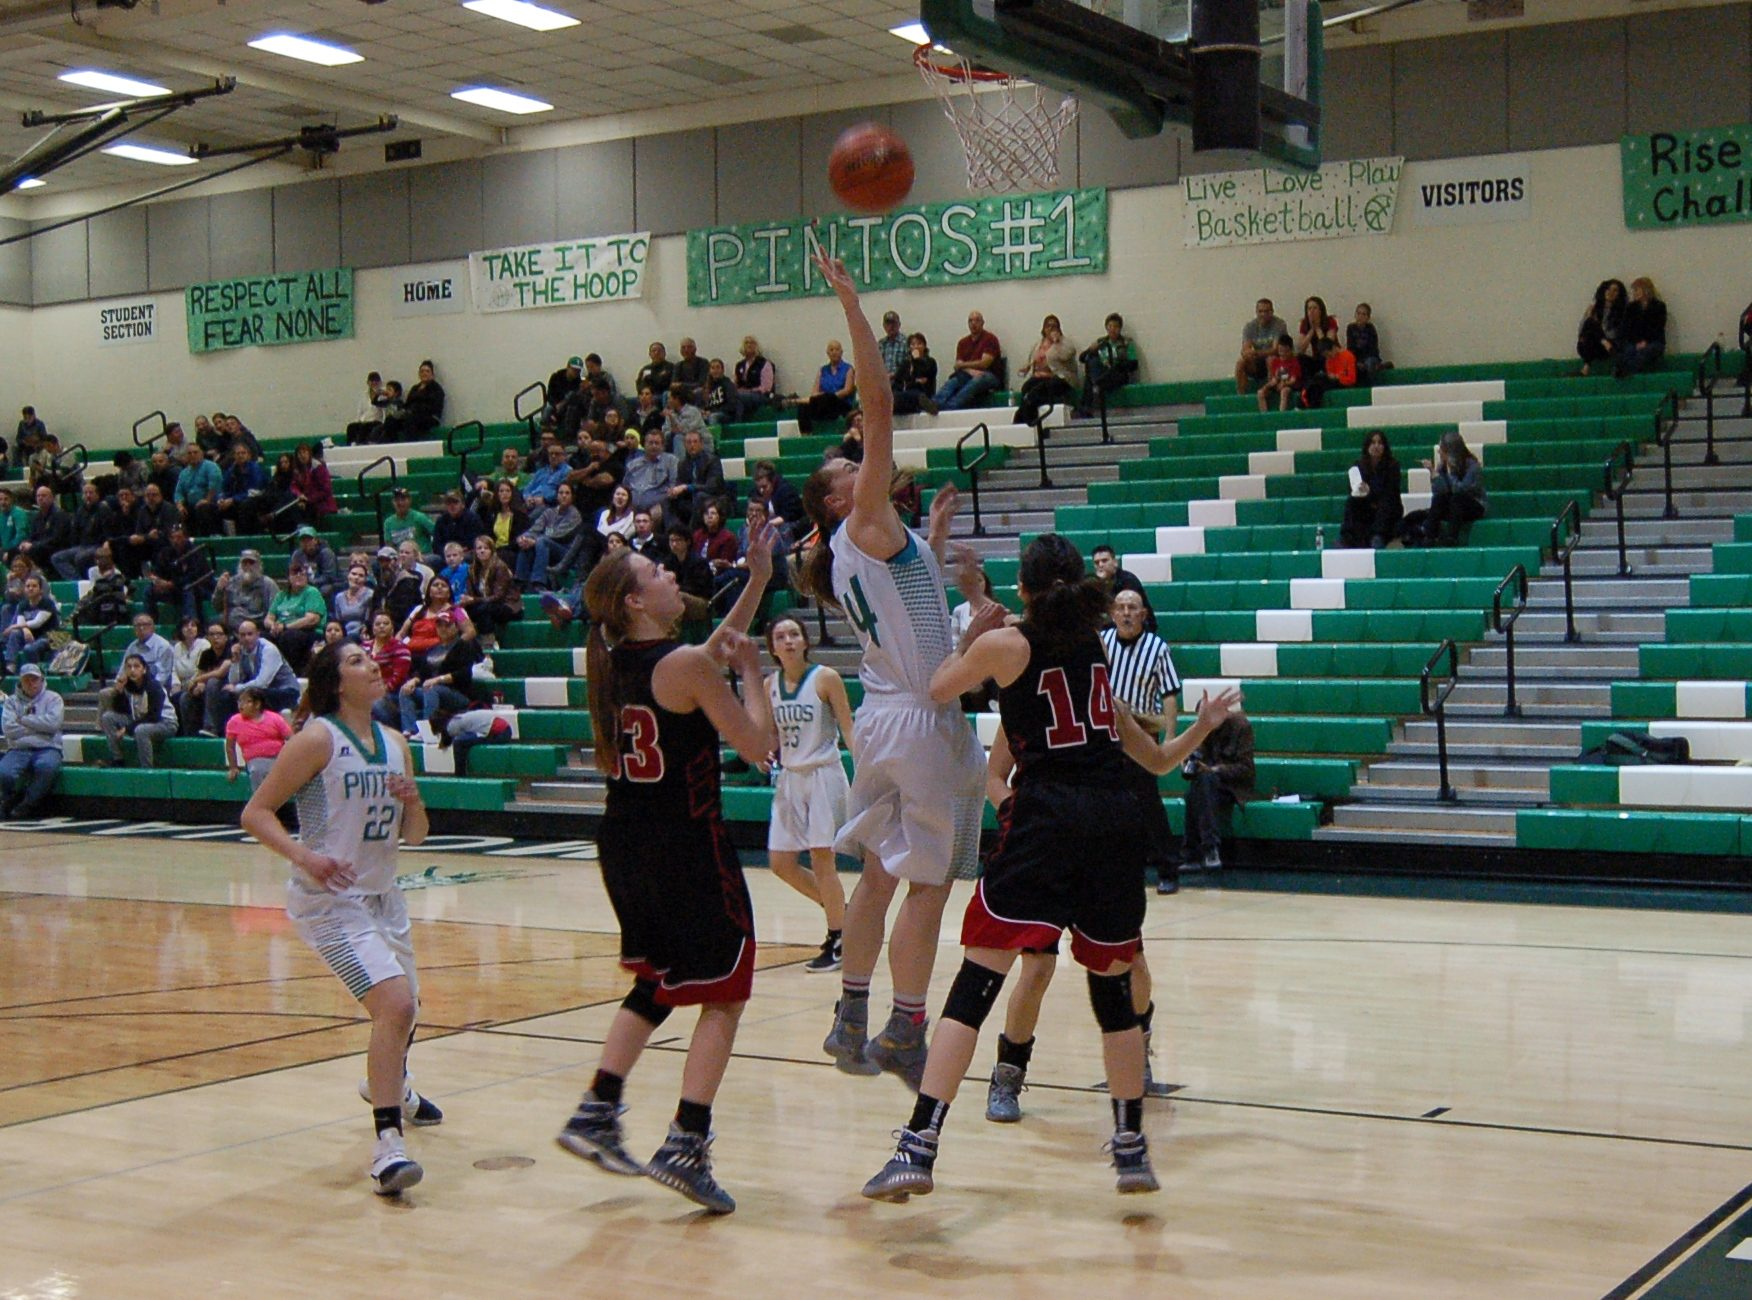 Moriarty girls get No. 5 seed at state after loss in district tourney